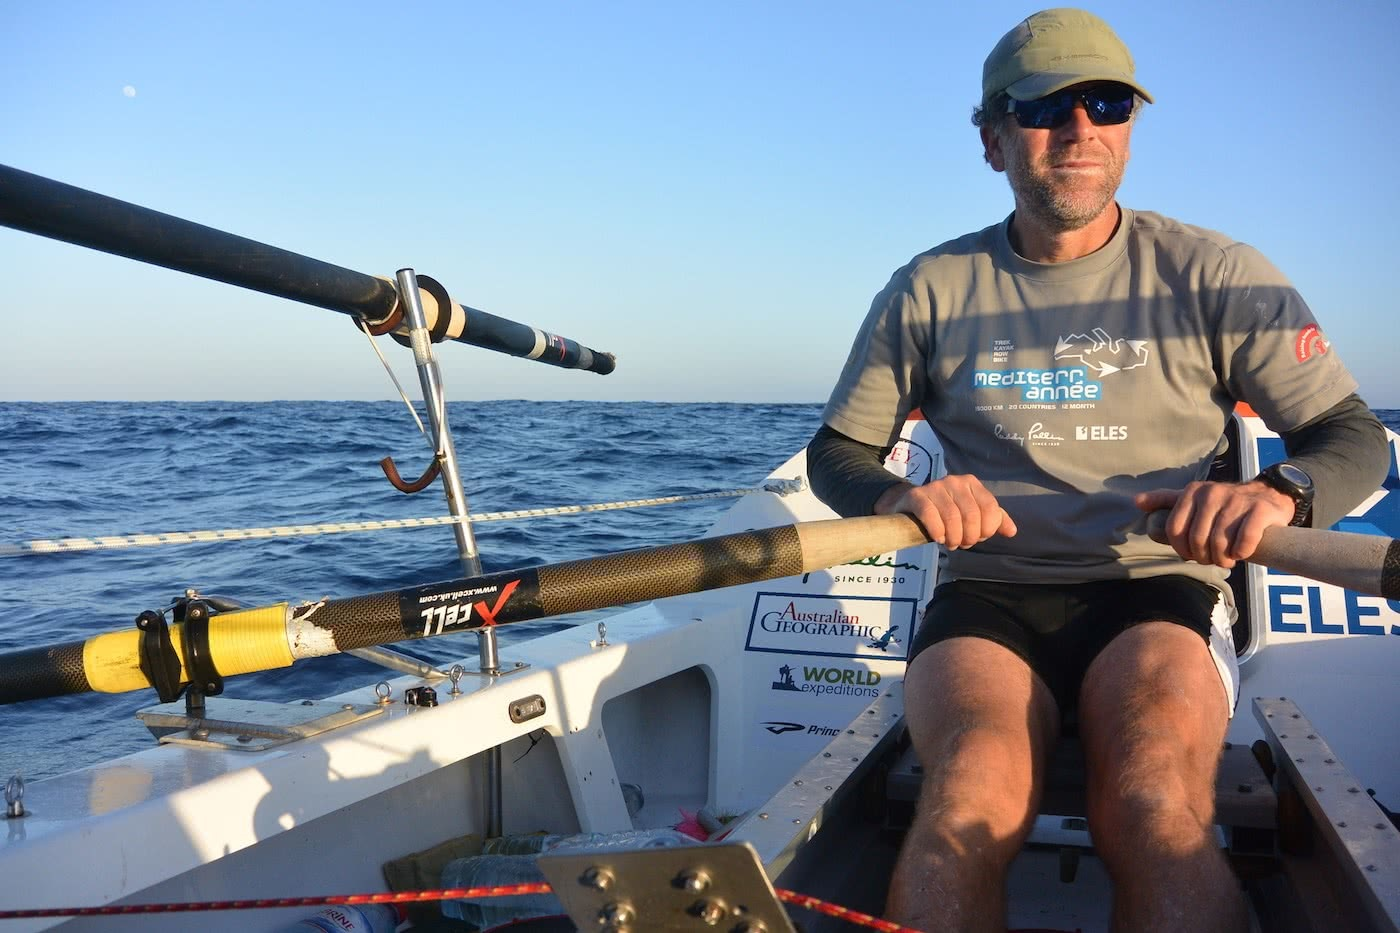 A Life Of Adventure And Now, Politics? // Interview With Huw Kingston,Photo by Marin Medak, Huw Kingston rowing across Mediterranean